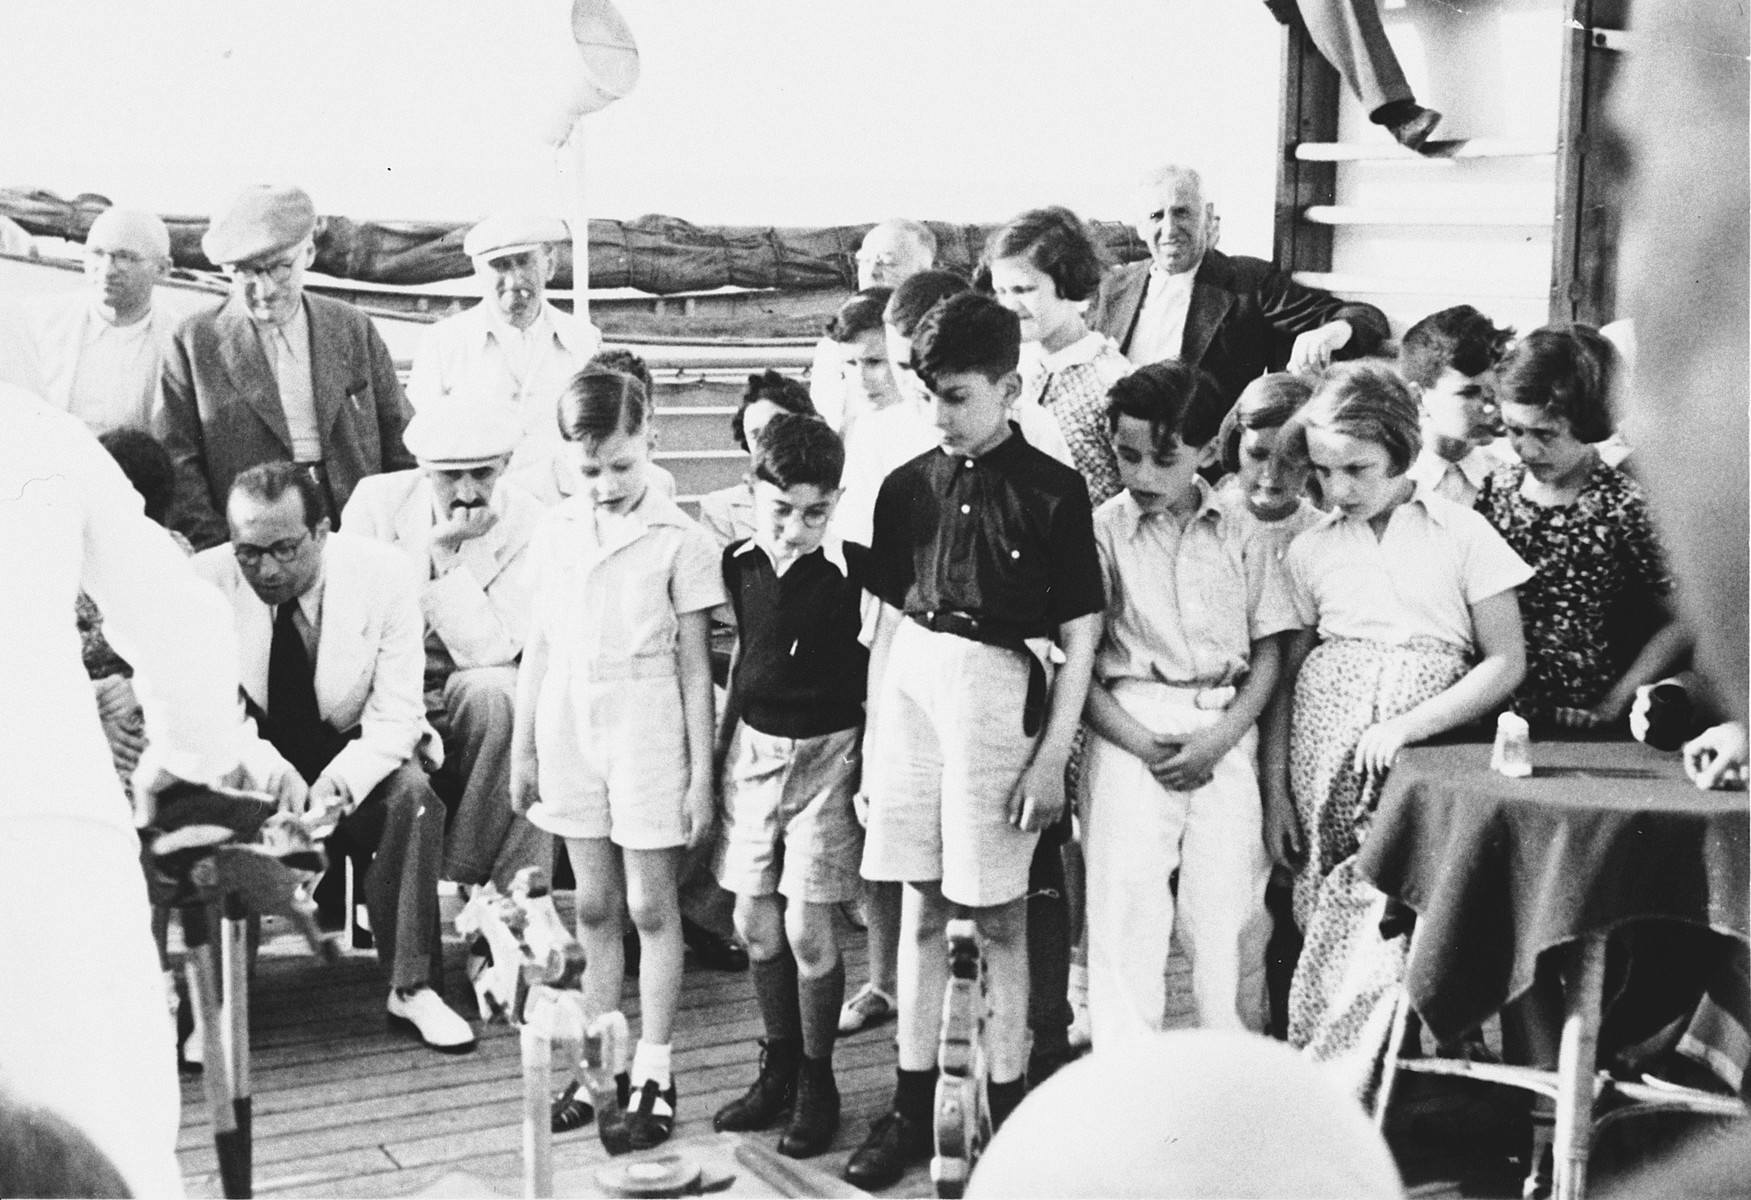 A group of children observe a game on the deck of the St. Louis.  Jan Chraplewski is the first child on the left.